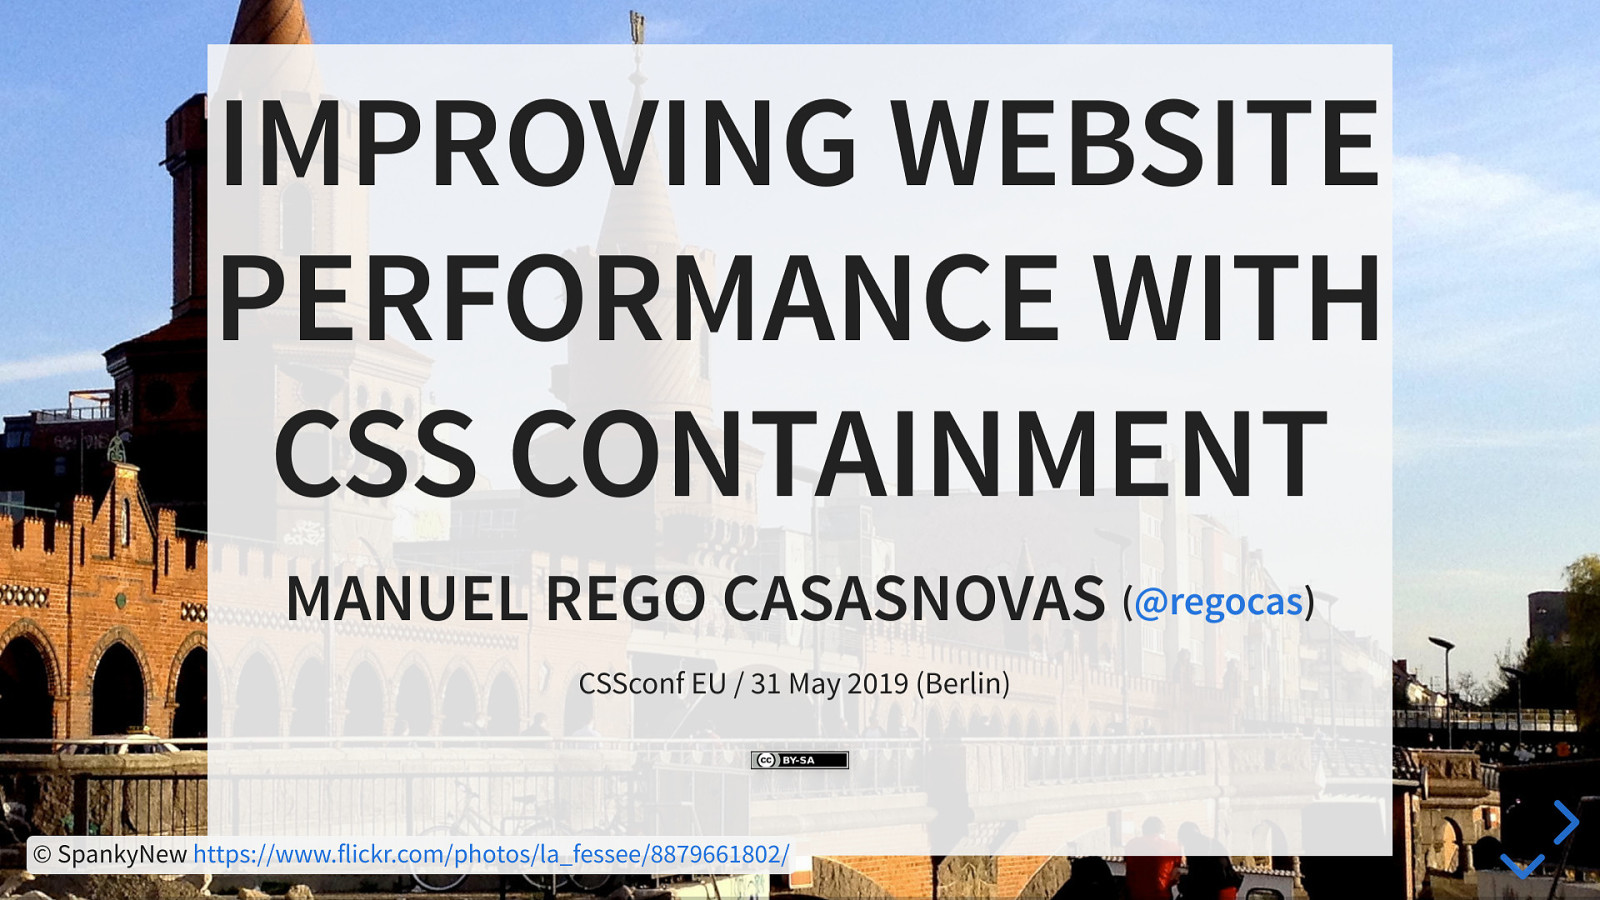 Improving Website Performance with CSS Containment